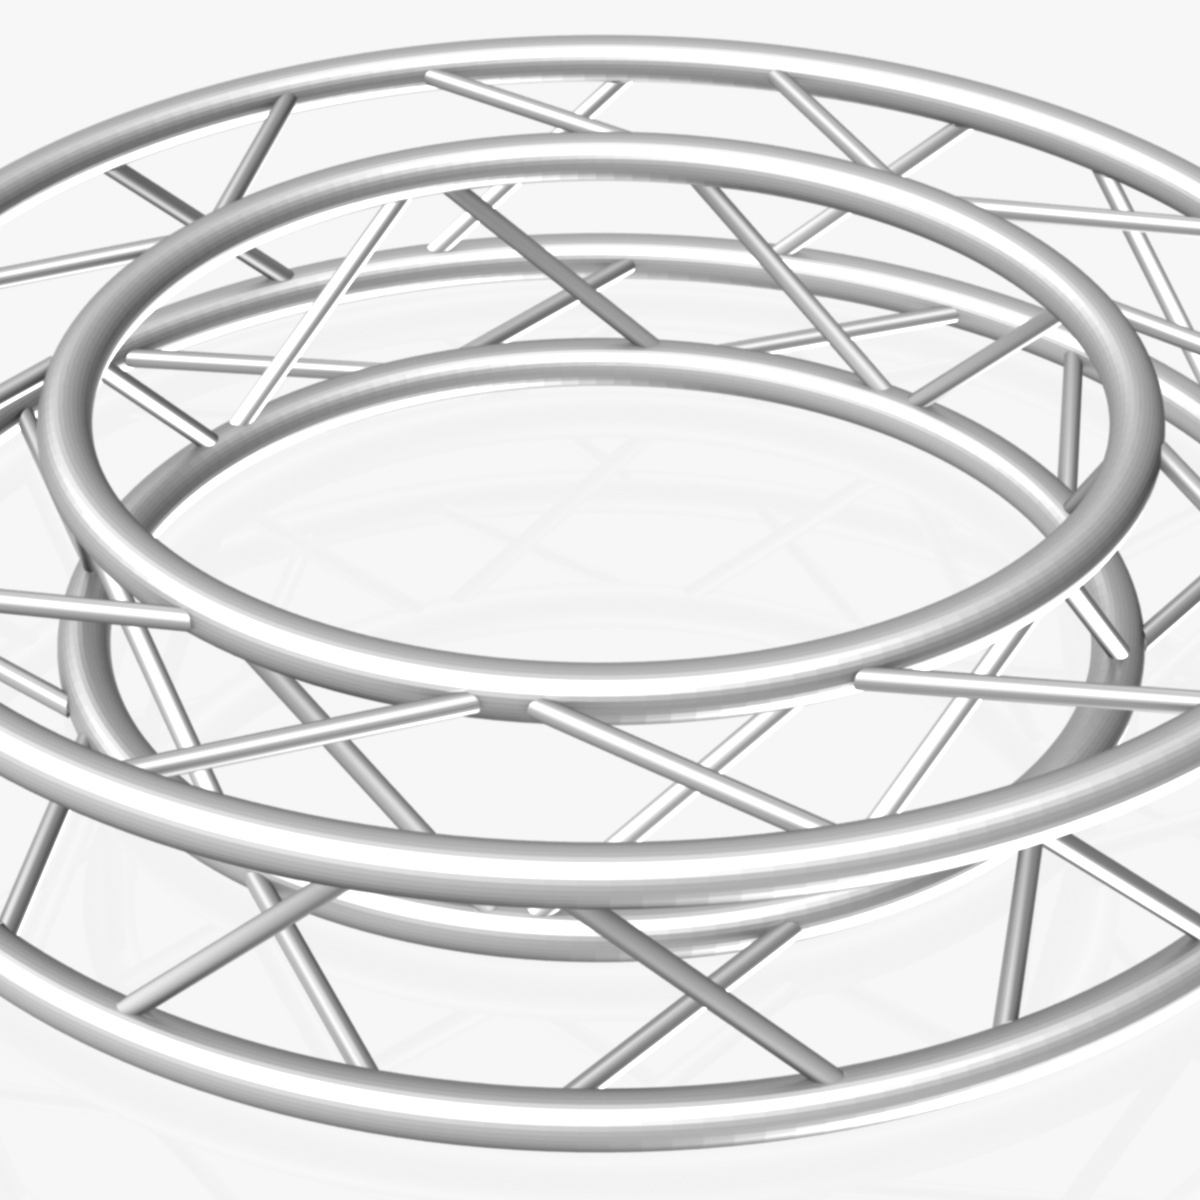 circle square truss full diameter 150cm 3d model 3ds max fbx c4d dae  obj 252293